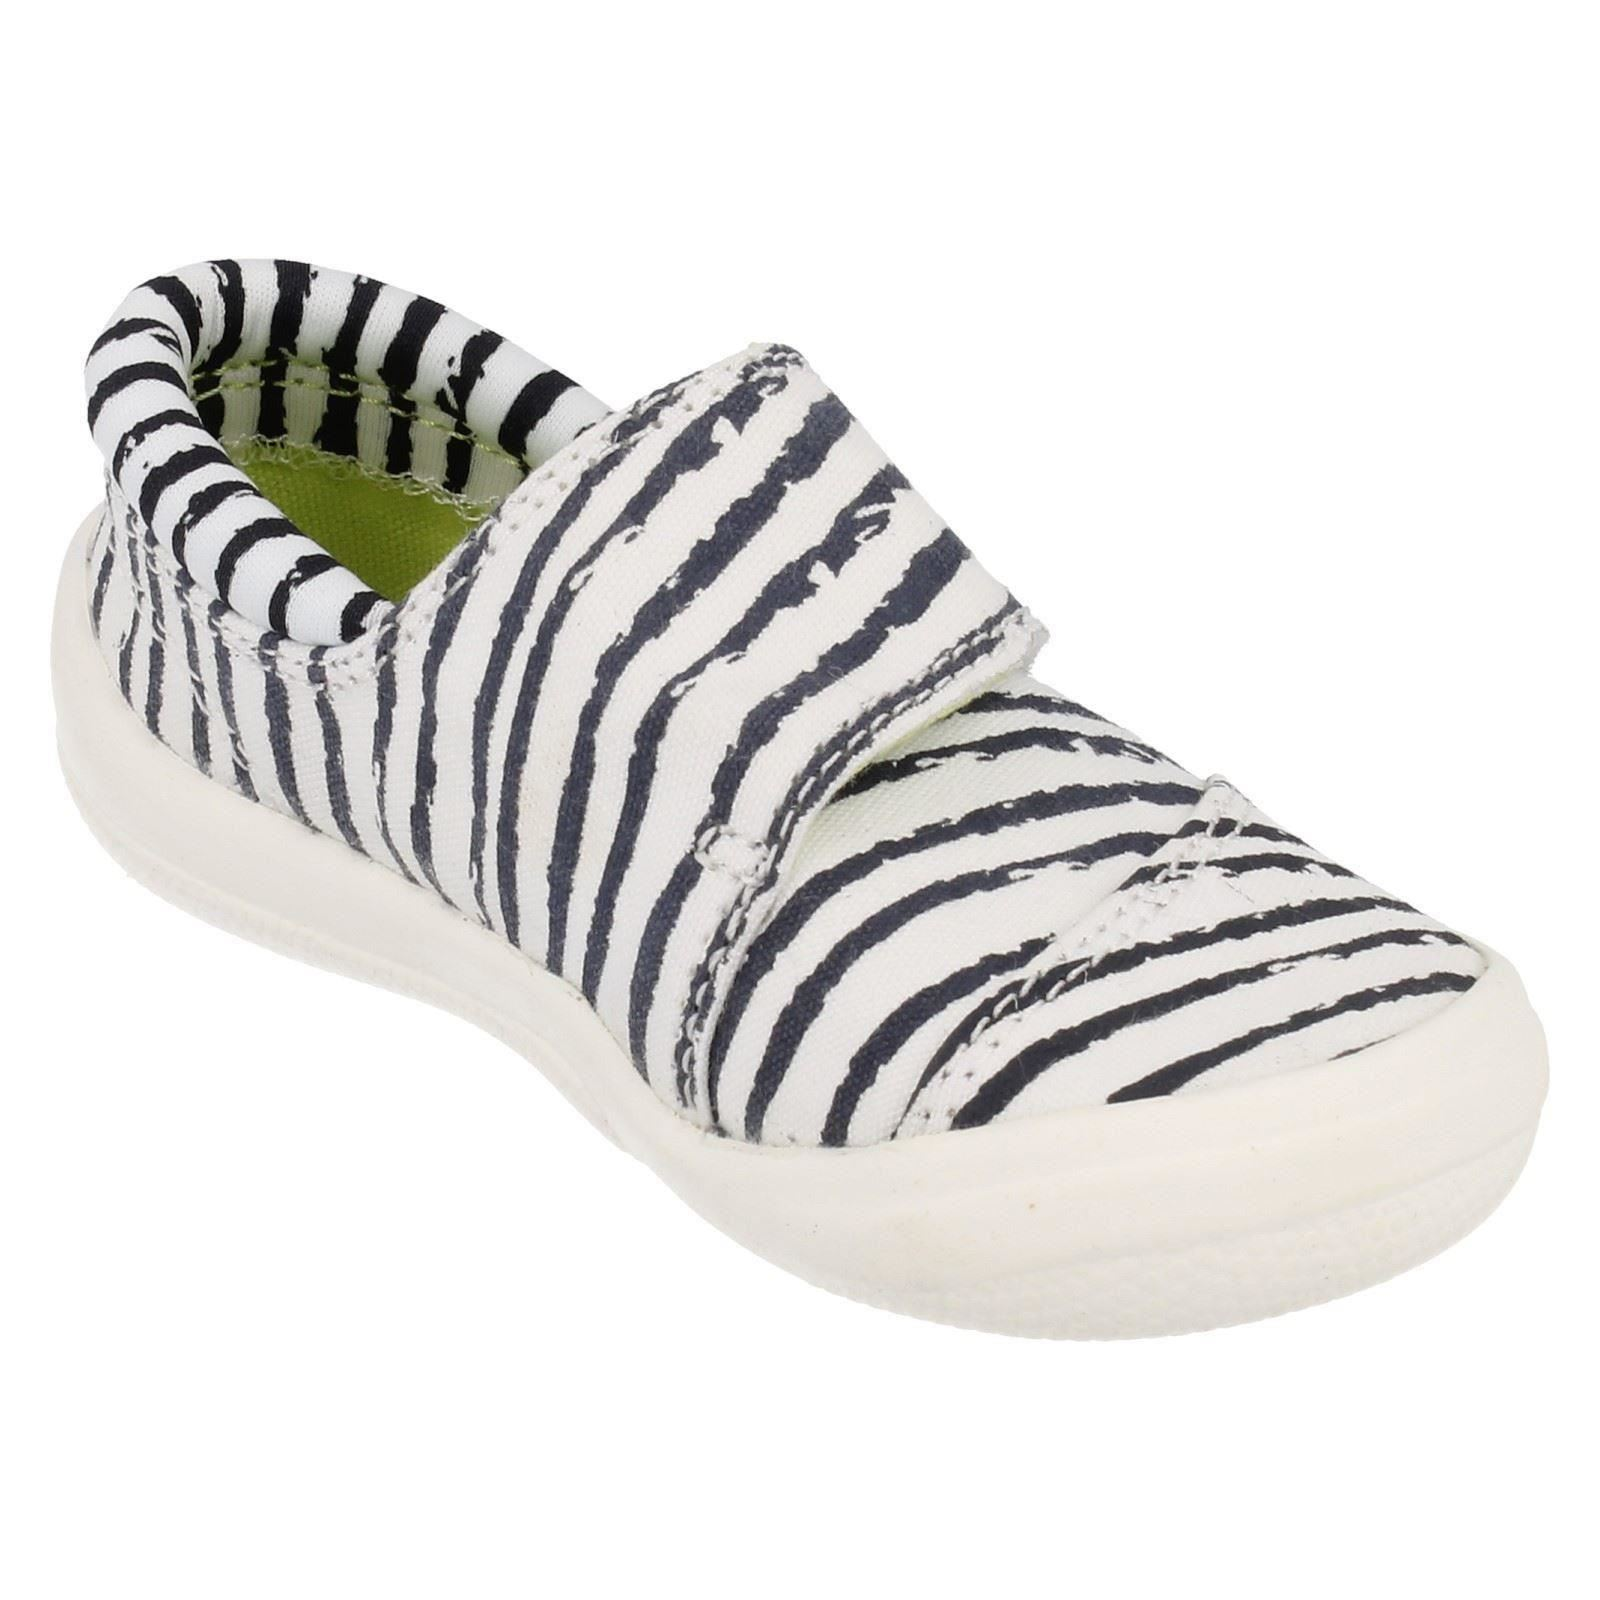 Chicos Zapatos Clarks Doodles Estilo-Briley Boy